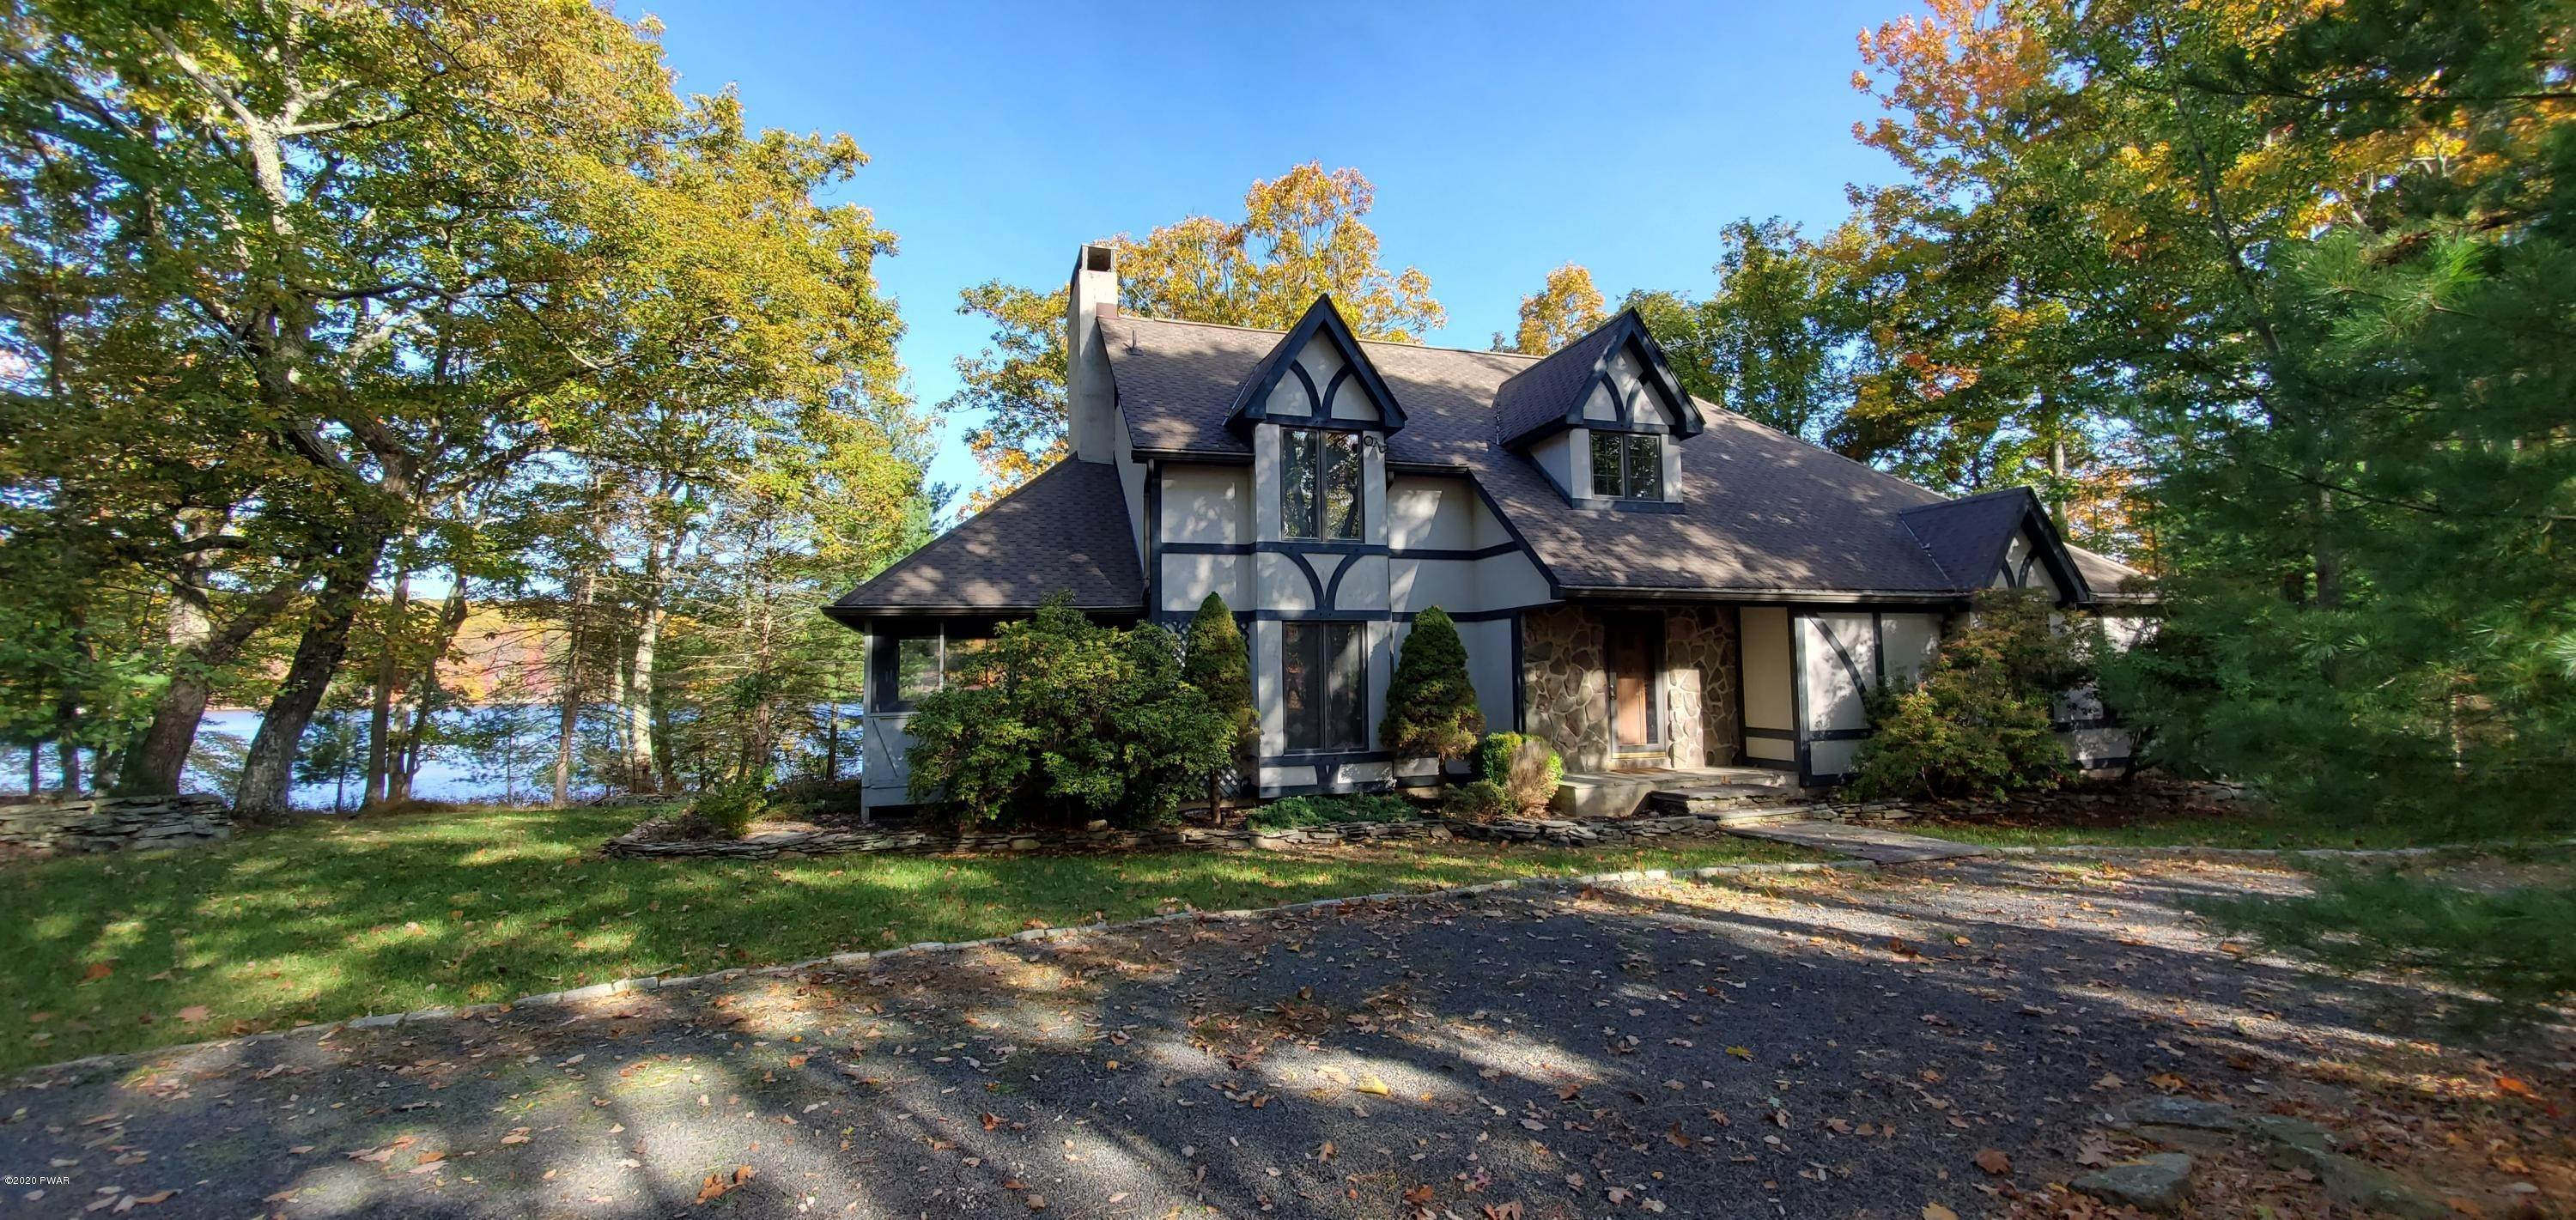 2. Single Family Homes for Sale at 114 Miller Ct Milford, Pennsylvania 18337 United States